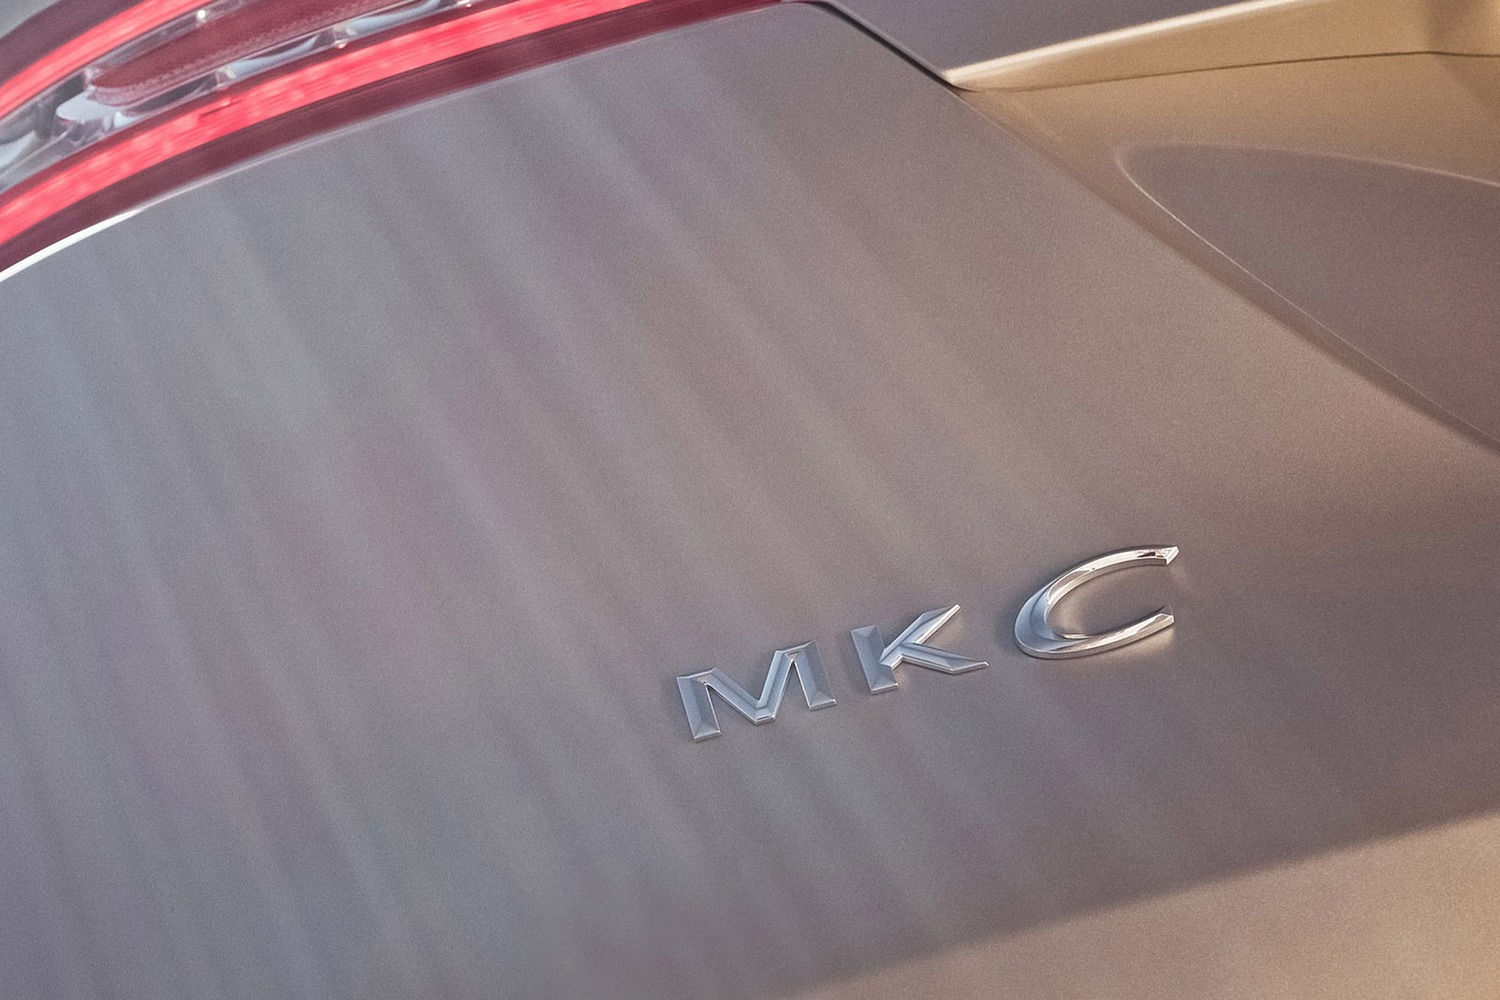 Lincoln MKC Select 4dr SUV Rear Badge (2016 model year shown)